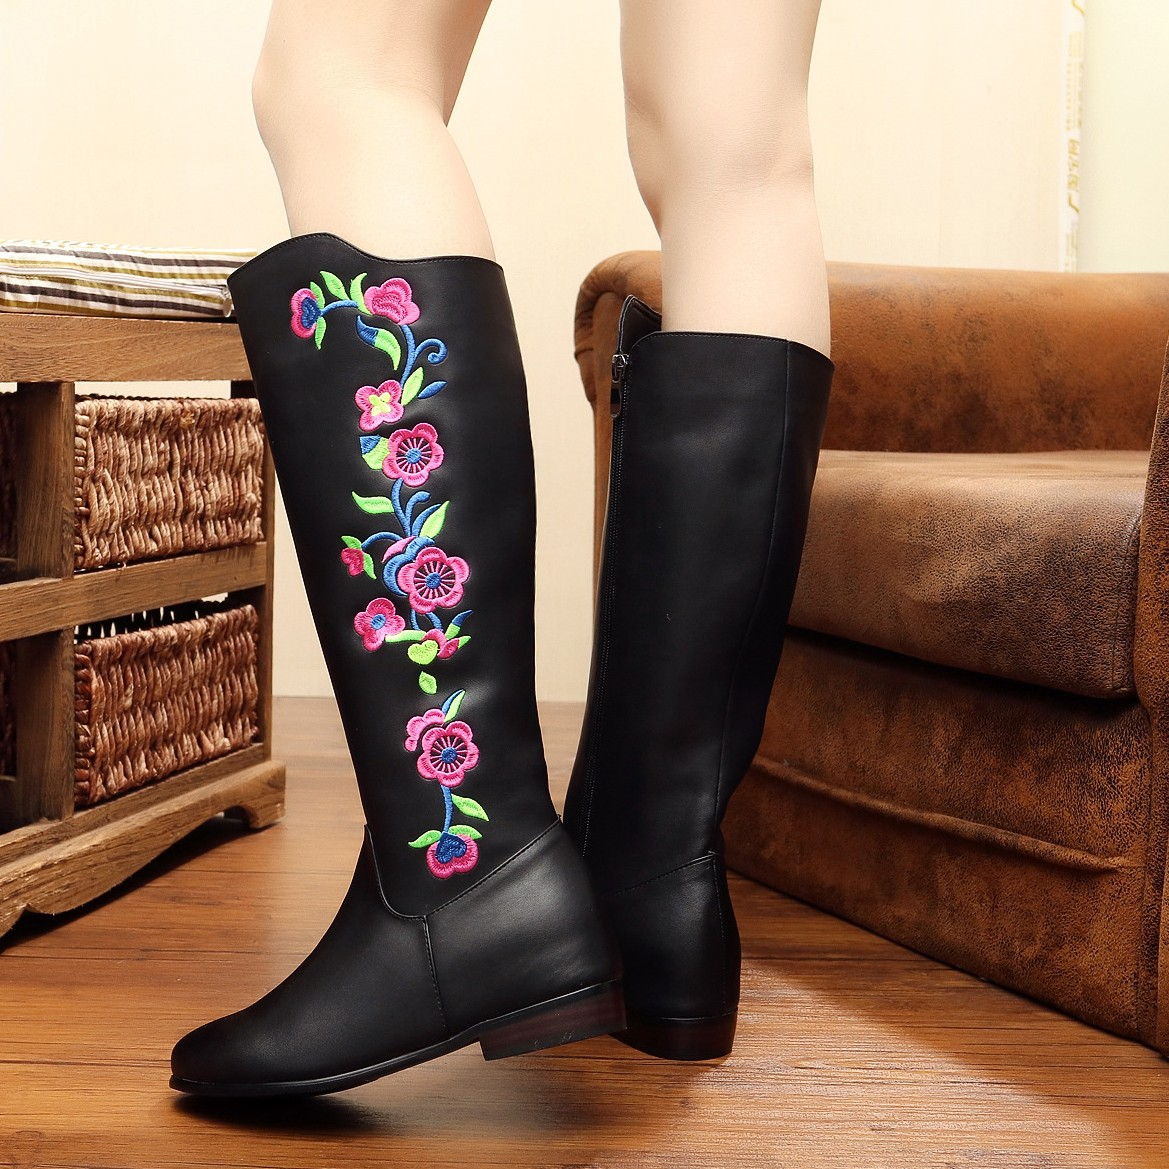 Madam Panic Buying Sweet Chinese Embroider Boots Autumn Winter Pu Leather Knee-High Boot Black Embroidery Shoes SMYXHX-B0086<br><br>Aliexpress